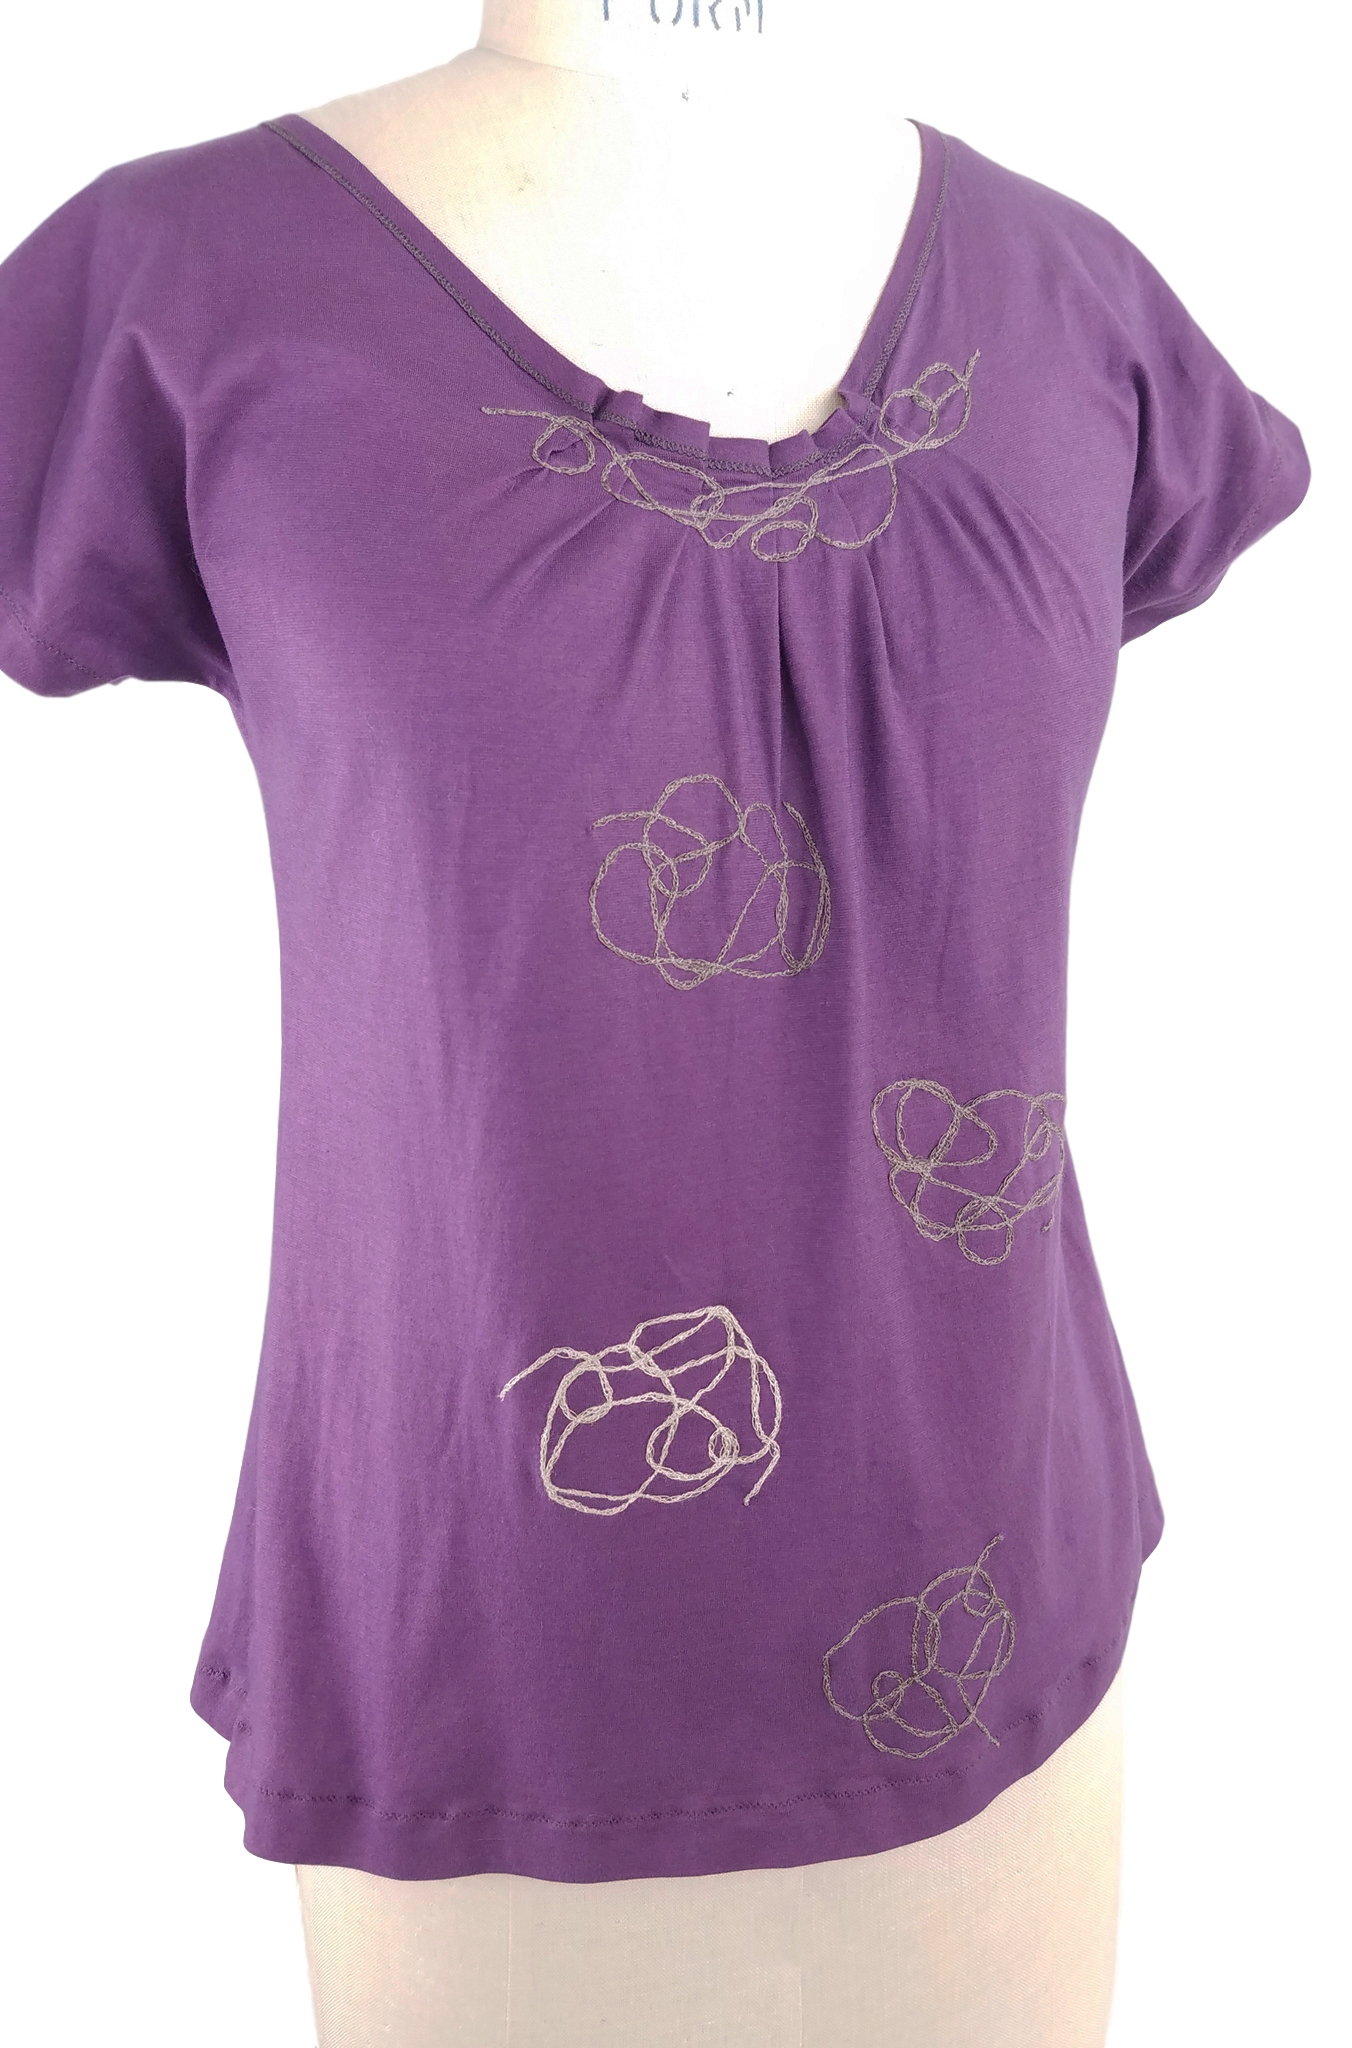 Knotted Top in Plum